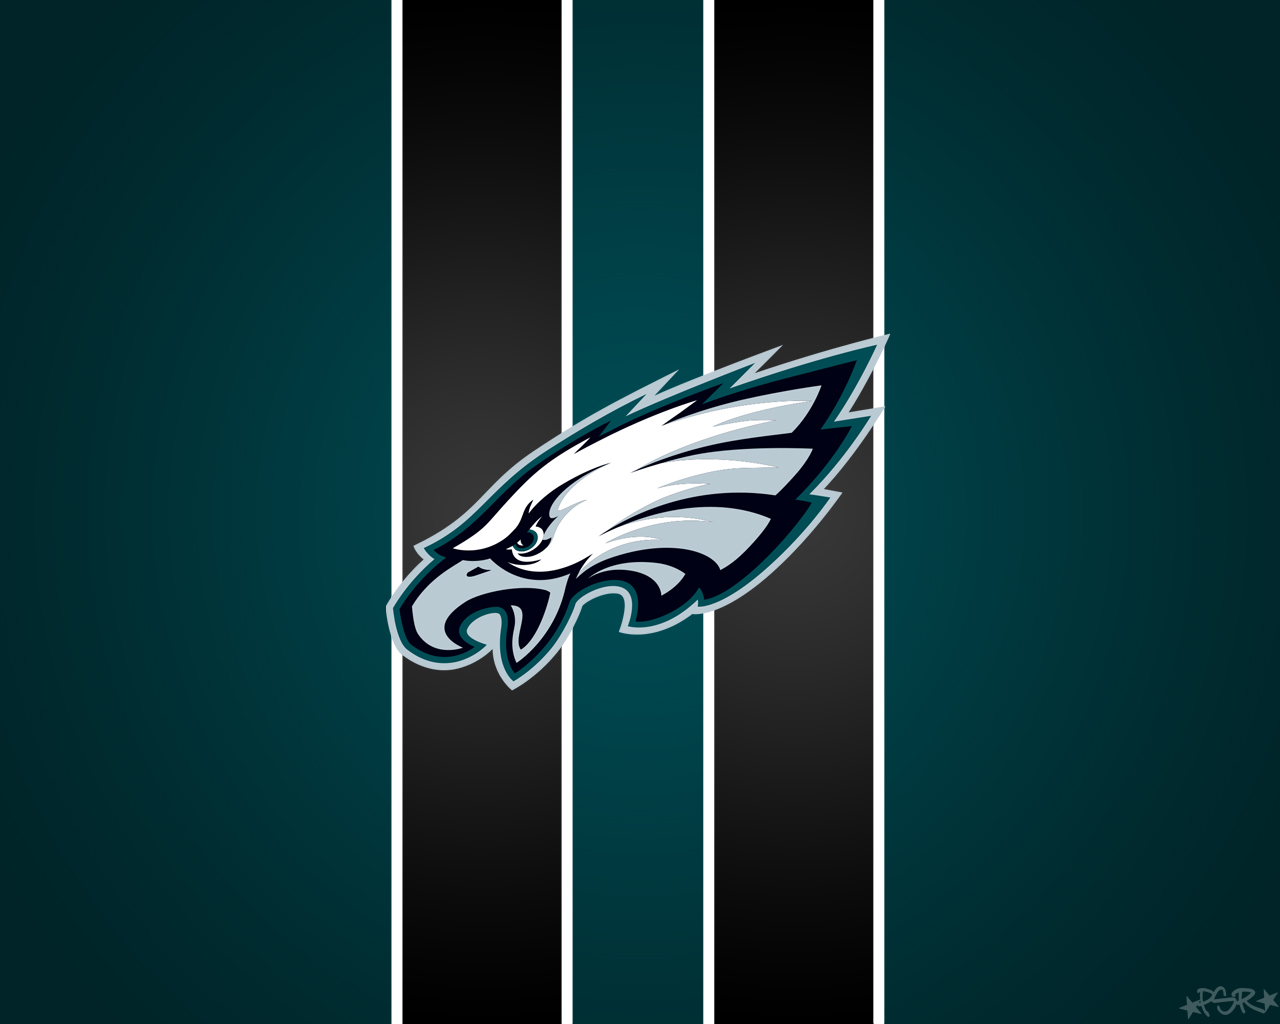 Sports Philadelphia Eagles Wallpaper #223803 - Resolution 1280x1024 px